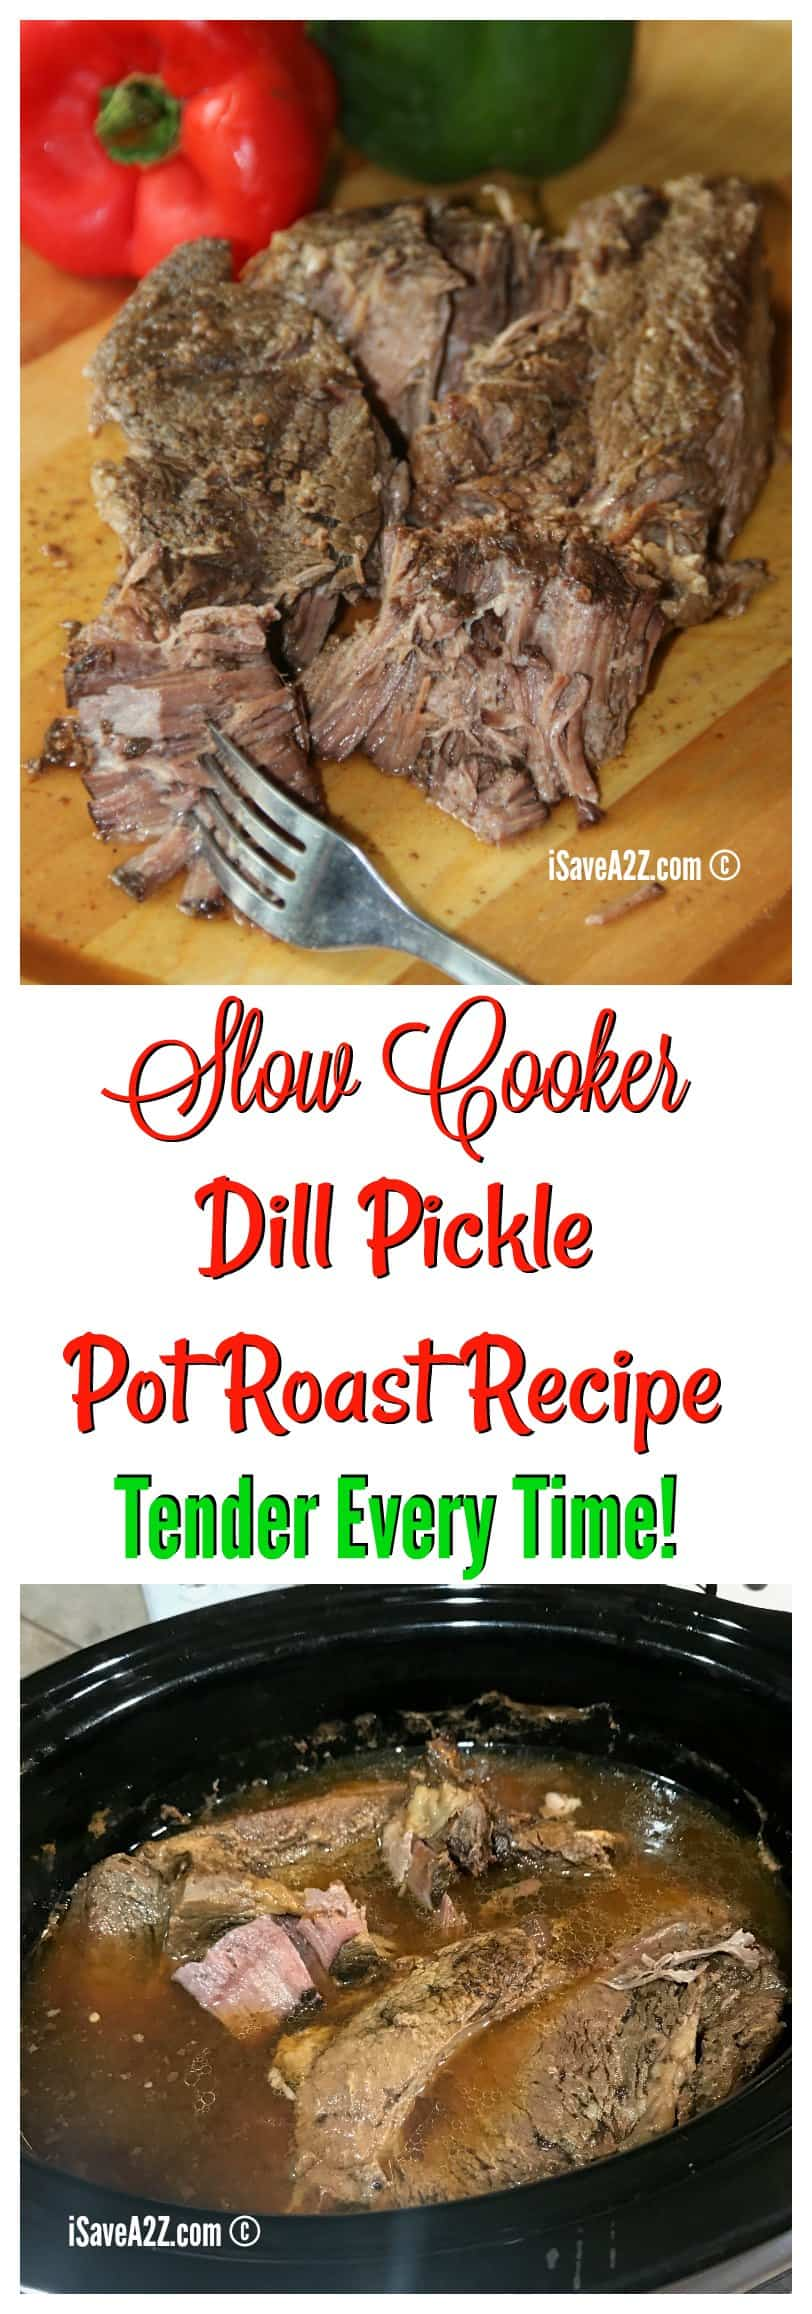 Slow Cooker Dill Pickle Pot Roast Recipe